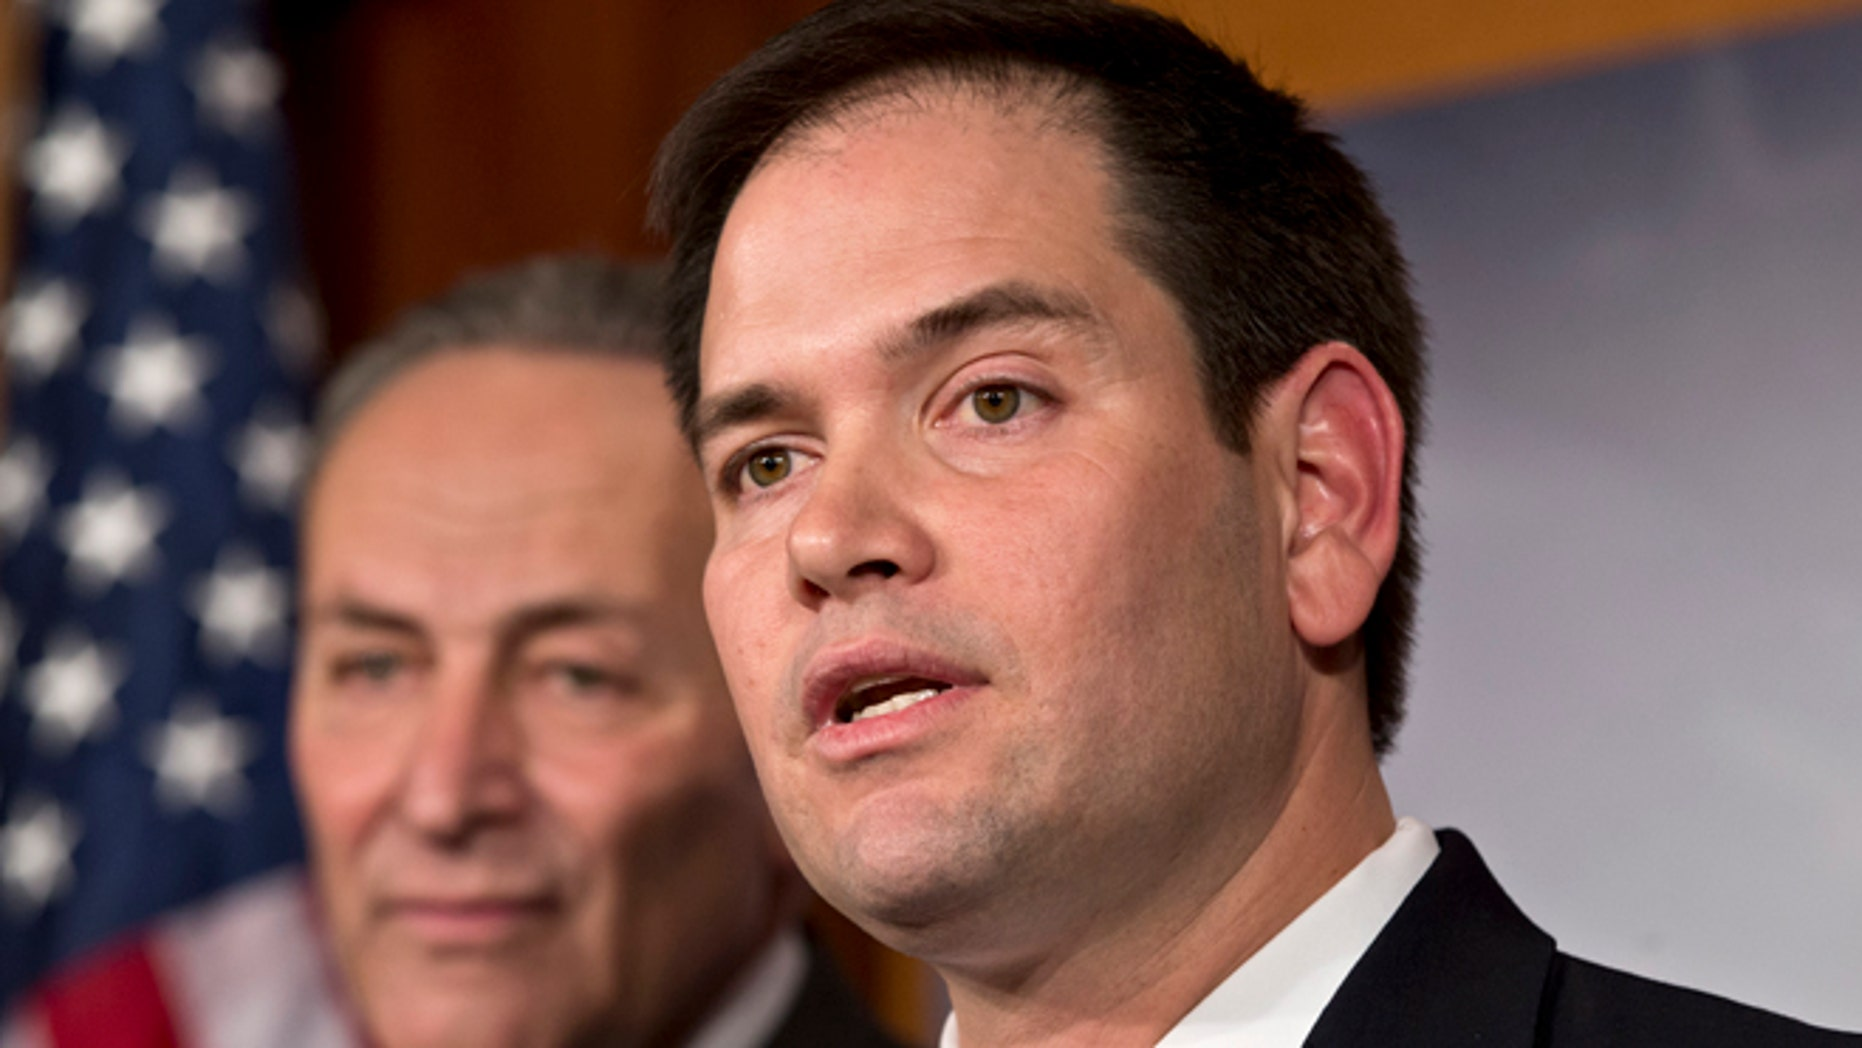 FILE - In this Jan. 28, 2013, photo, Sen. Marco Rubio, R-Fla., right, and Sen. Charles Schumer, D-N.Y., left, join a bipartisan group of leading senators to announce that they have reached agreement on the principles of sweeping legislation to rewrite the nation's immigration laws, during a news conference at the Capitol in Washington. Republicans face a delicate balancing act as they embrace immigration reform _ and no one is more symbolic of the potential risks and rewards than Rubio.  (AP Photo/J. Scott Applewhite)